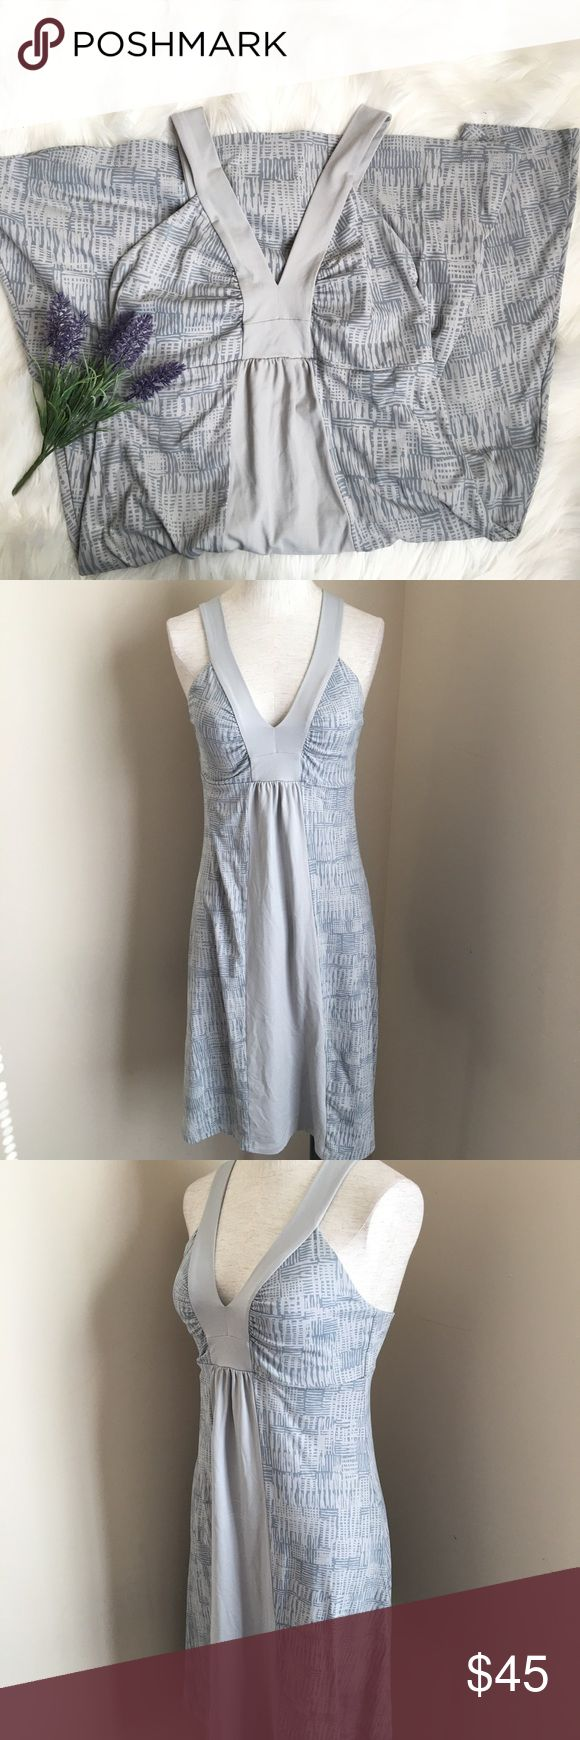 "Patagonia Lightweight Sporty Grey Athletic Dress Stretchy sporty dress. Lightweight and perfect for travel. Great Condition. 14 1/2"" Armpit to Armpit. 15"" Waist. 35"" Long. Measurements taken while laying flat. Patagonia Dresses"